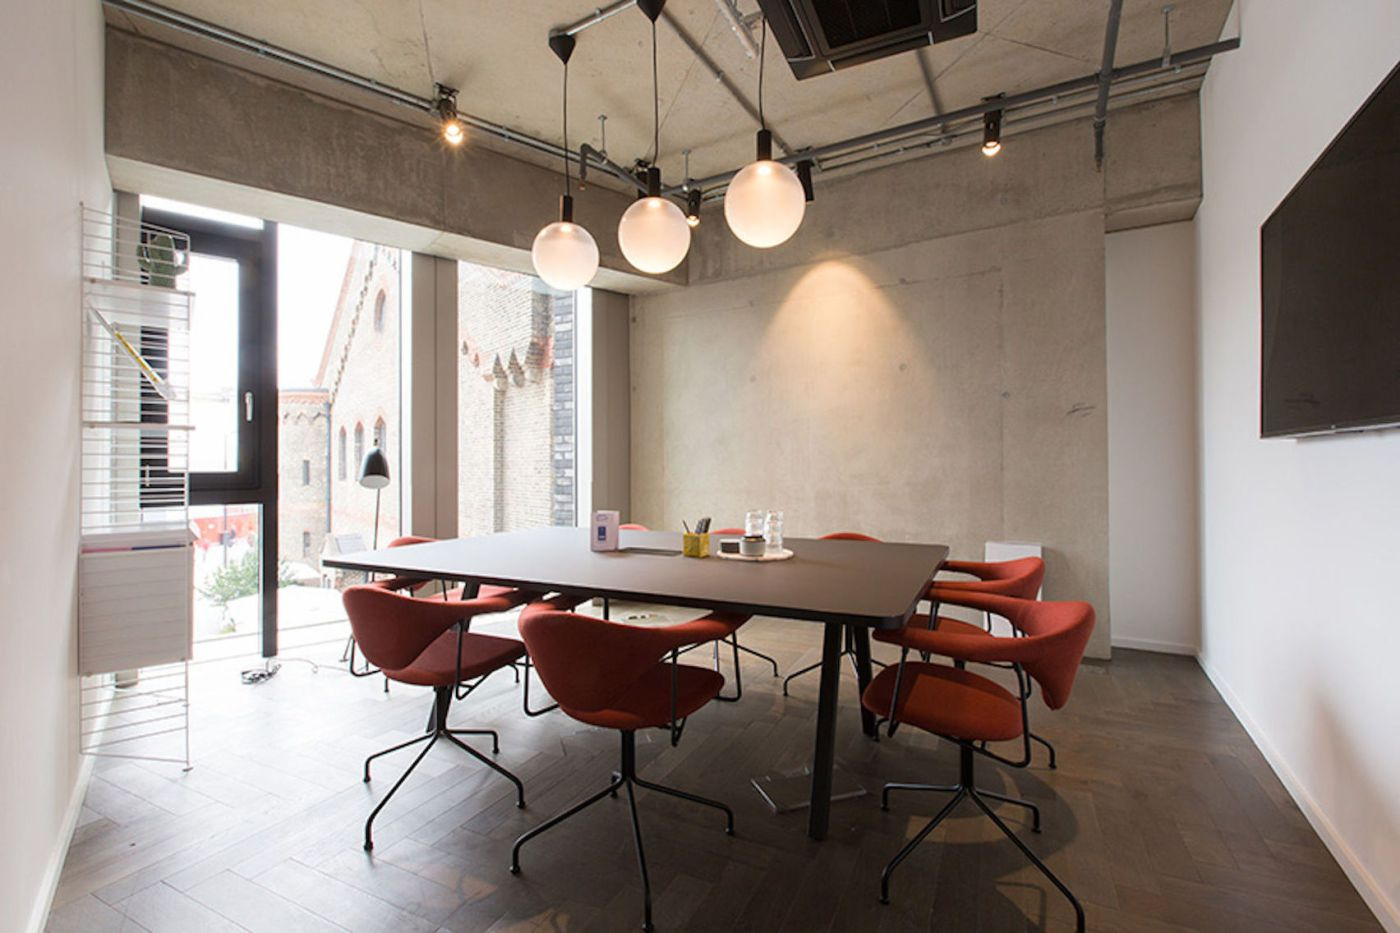 A large meeting room with concrete walls and orange chairs